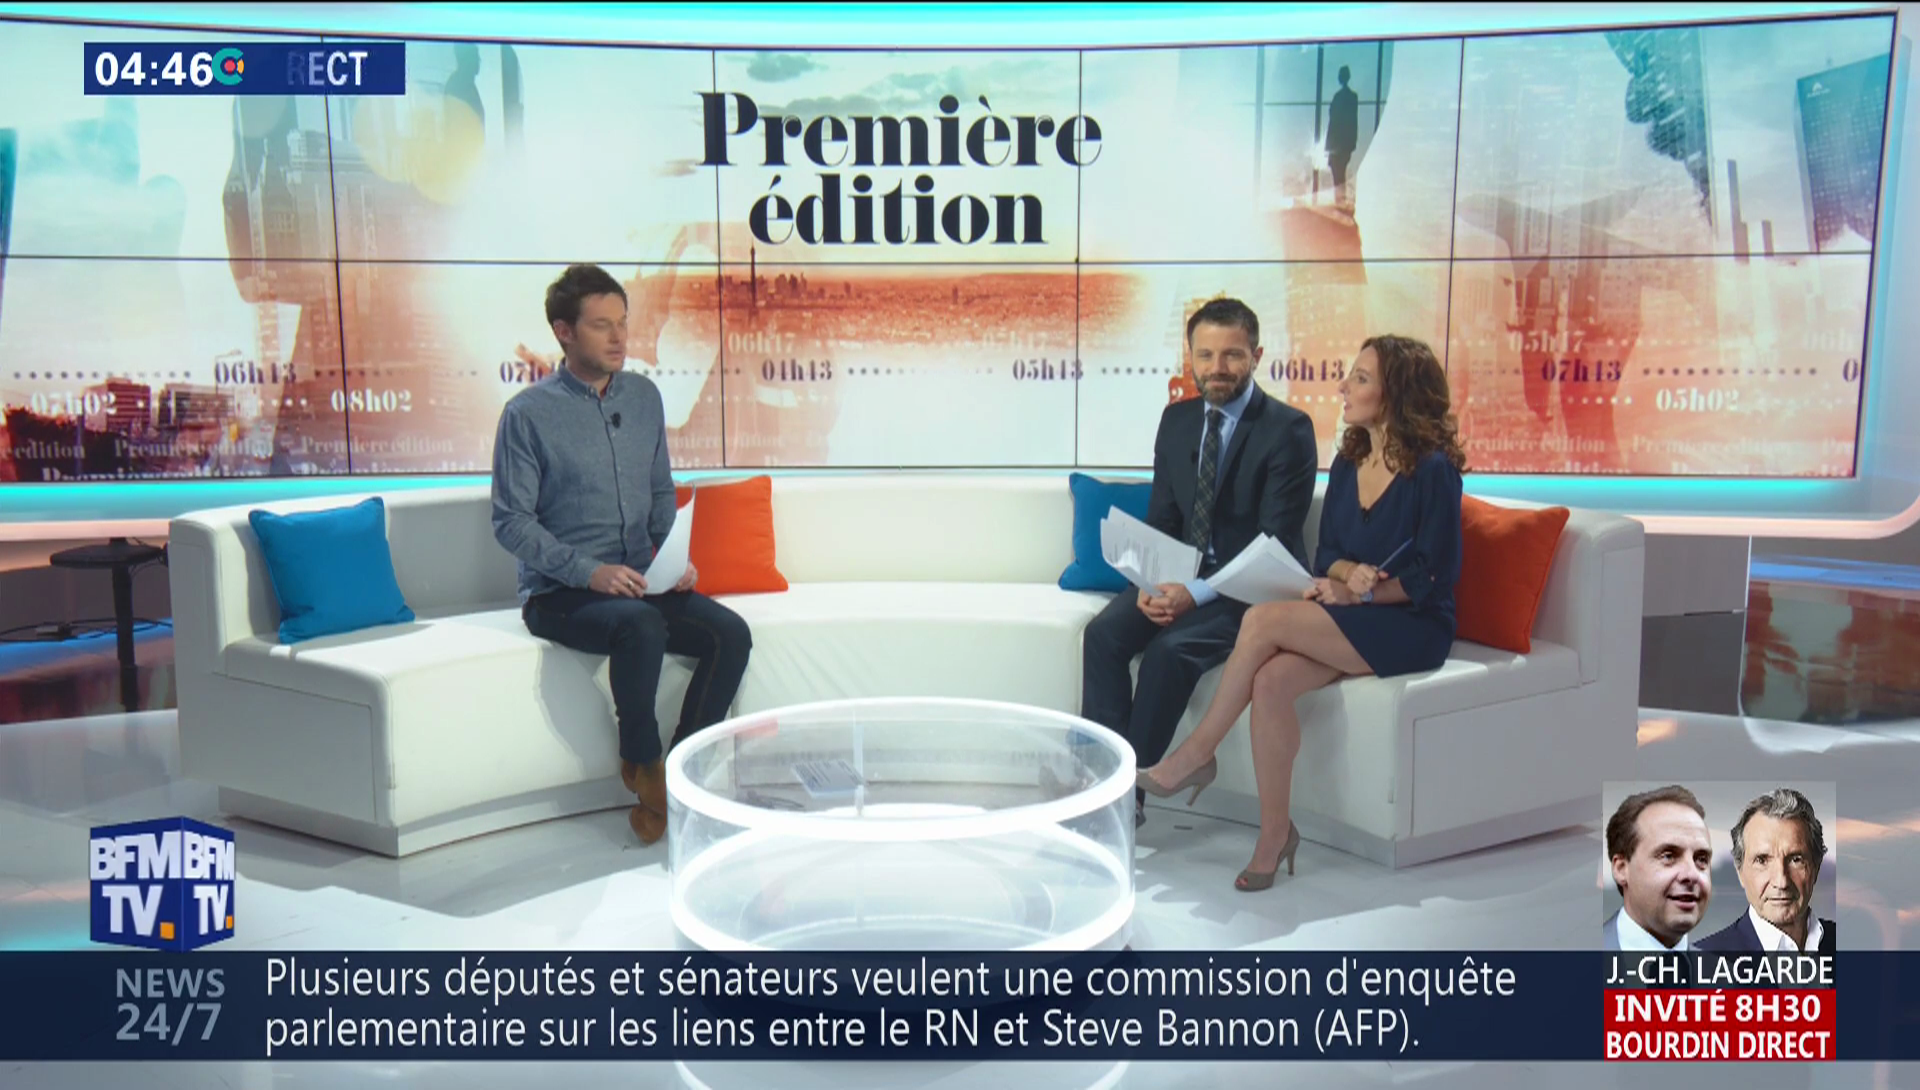 juliavanaelst04.2019_05_13_journalpremiereeditionBFMTV